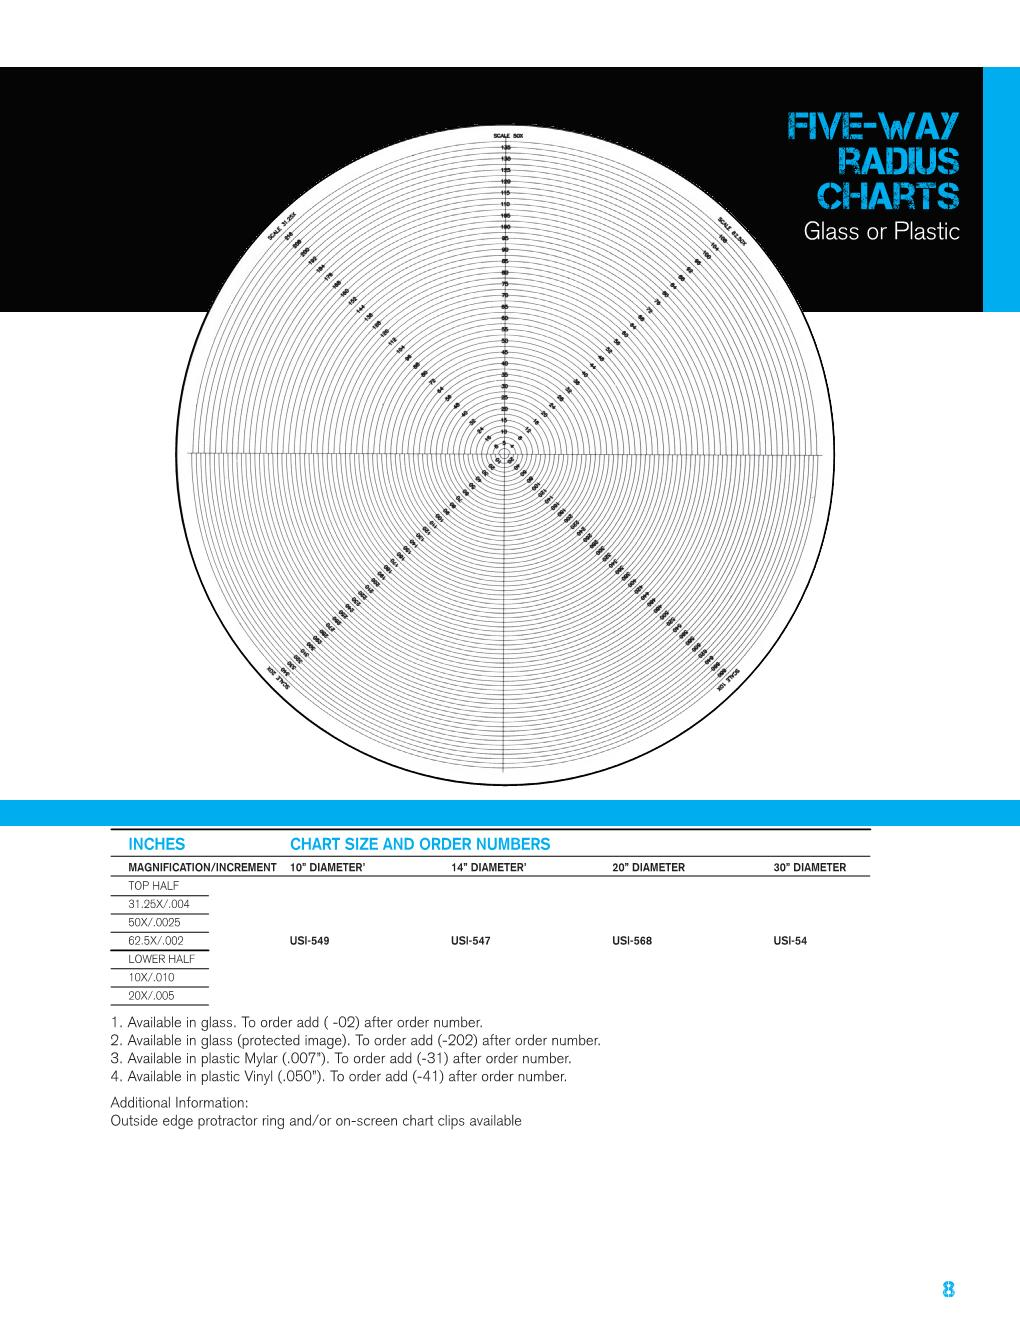 Unlimited Services Chart & Fixture Catalog 12.2018 FINAL Page 009.jpg